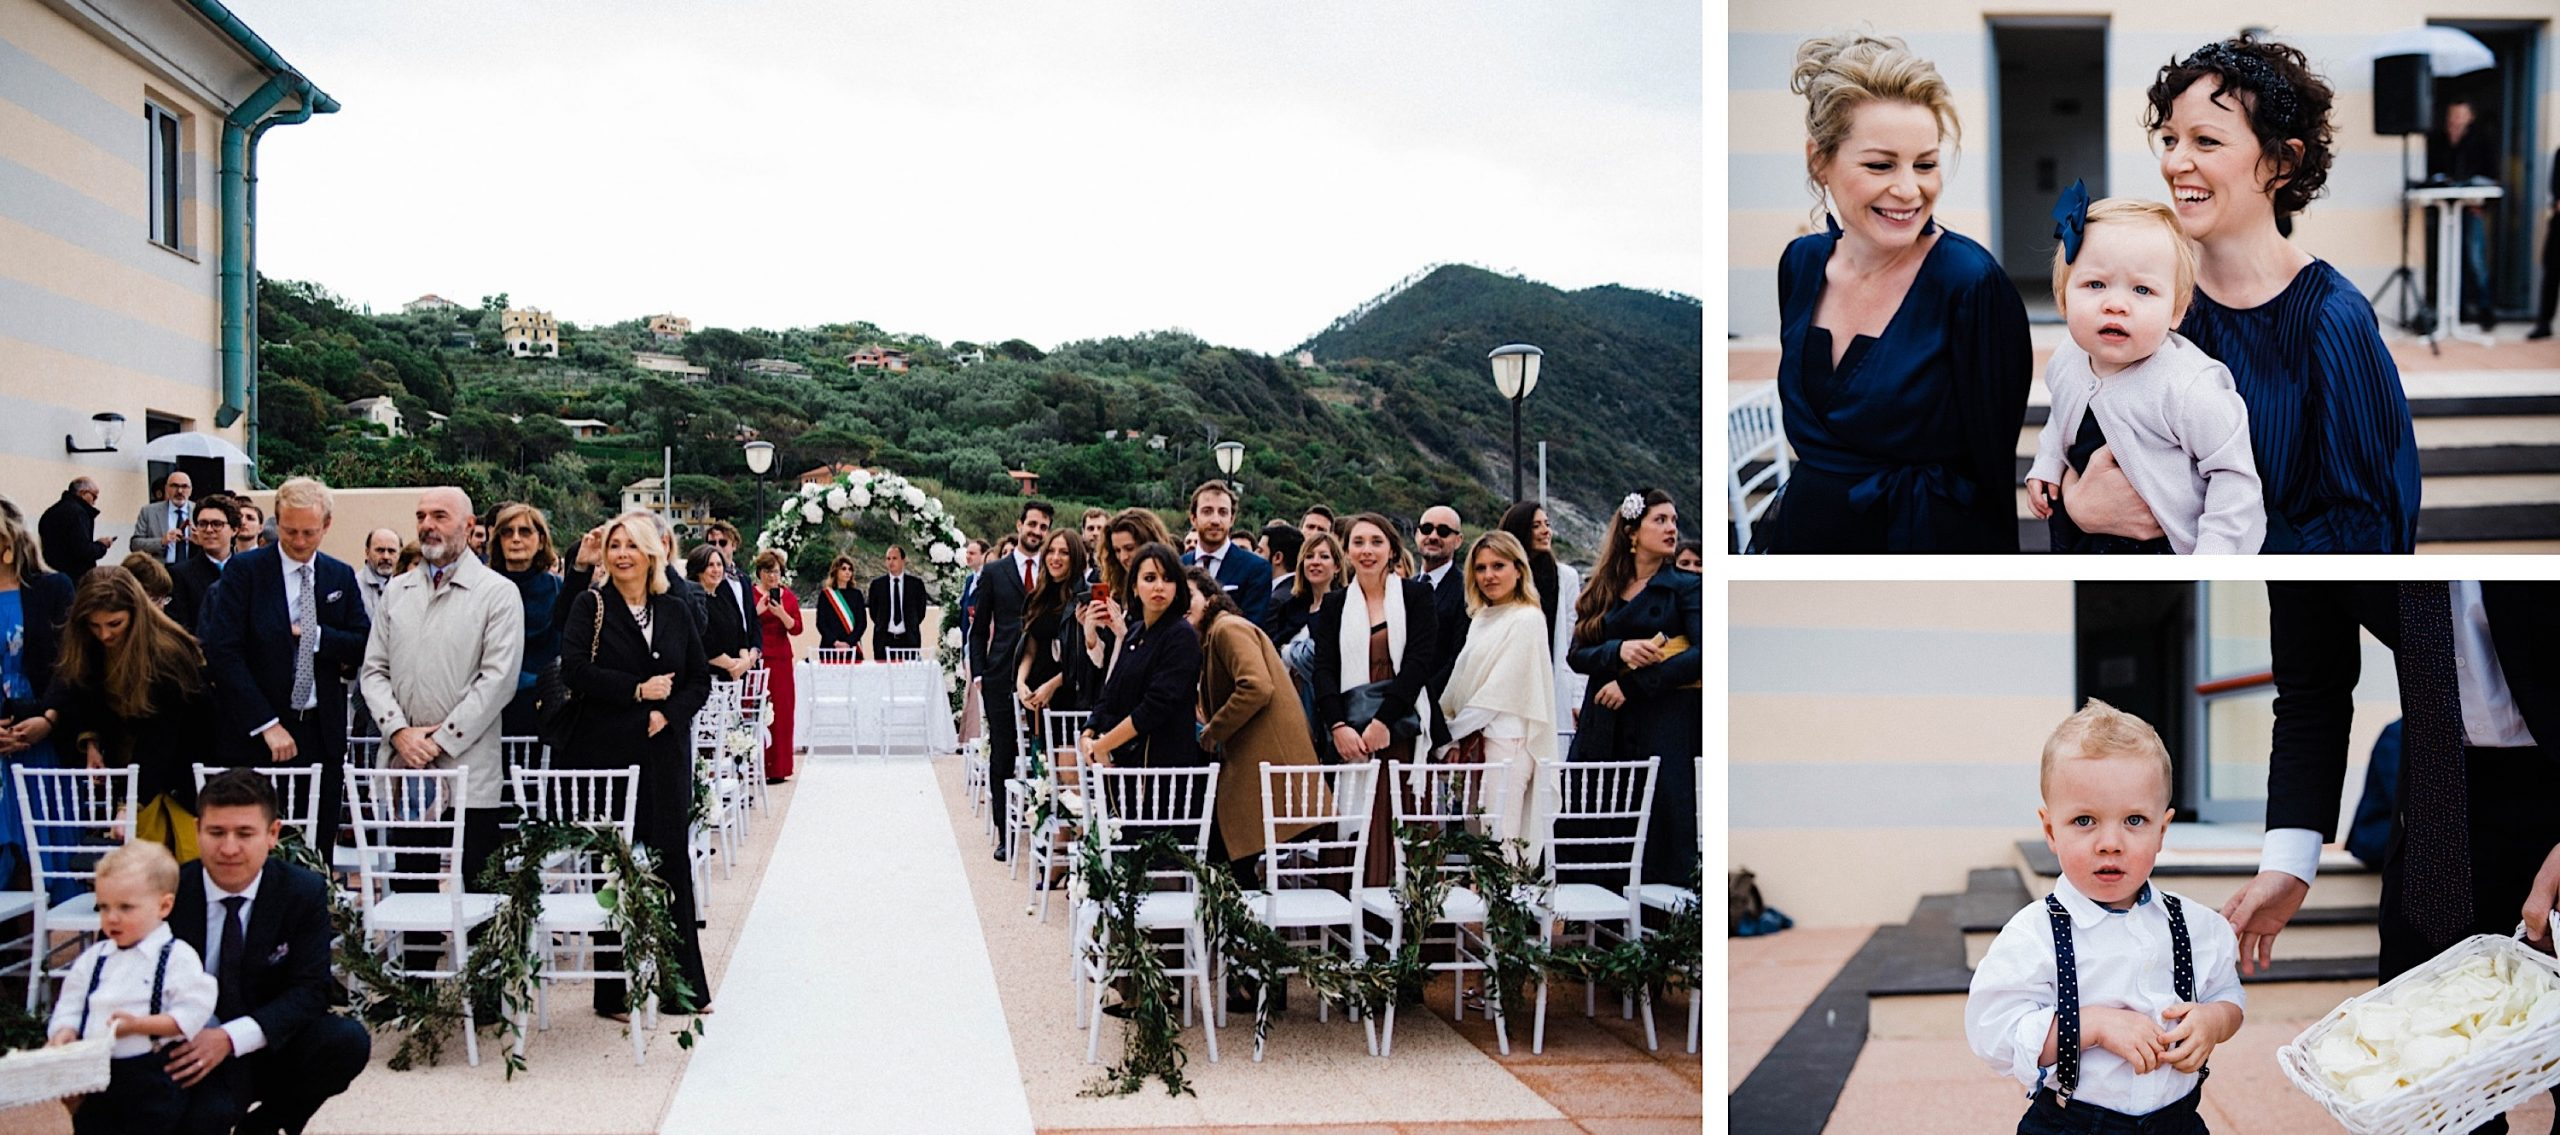 Photos from a Wedding Ceremony at the ex-Convento dell'Annunziata in Sestri Levante, including the Ceremony set-up and candid photos of guests.